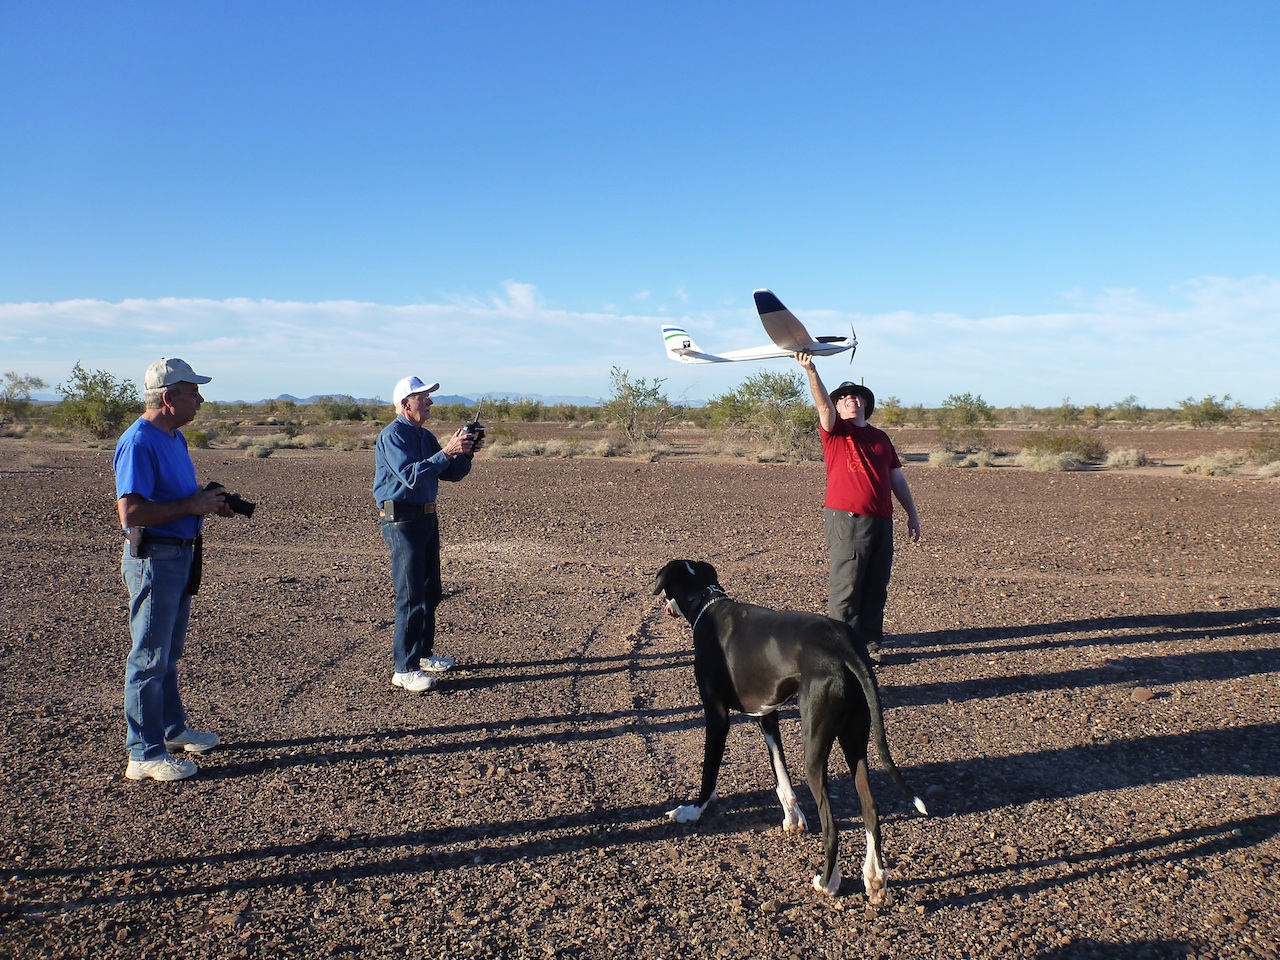 David, Dave, Ken, And Hoover The Great Dane, Took To The Skies With Dave's Airplane.